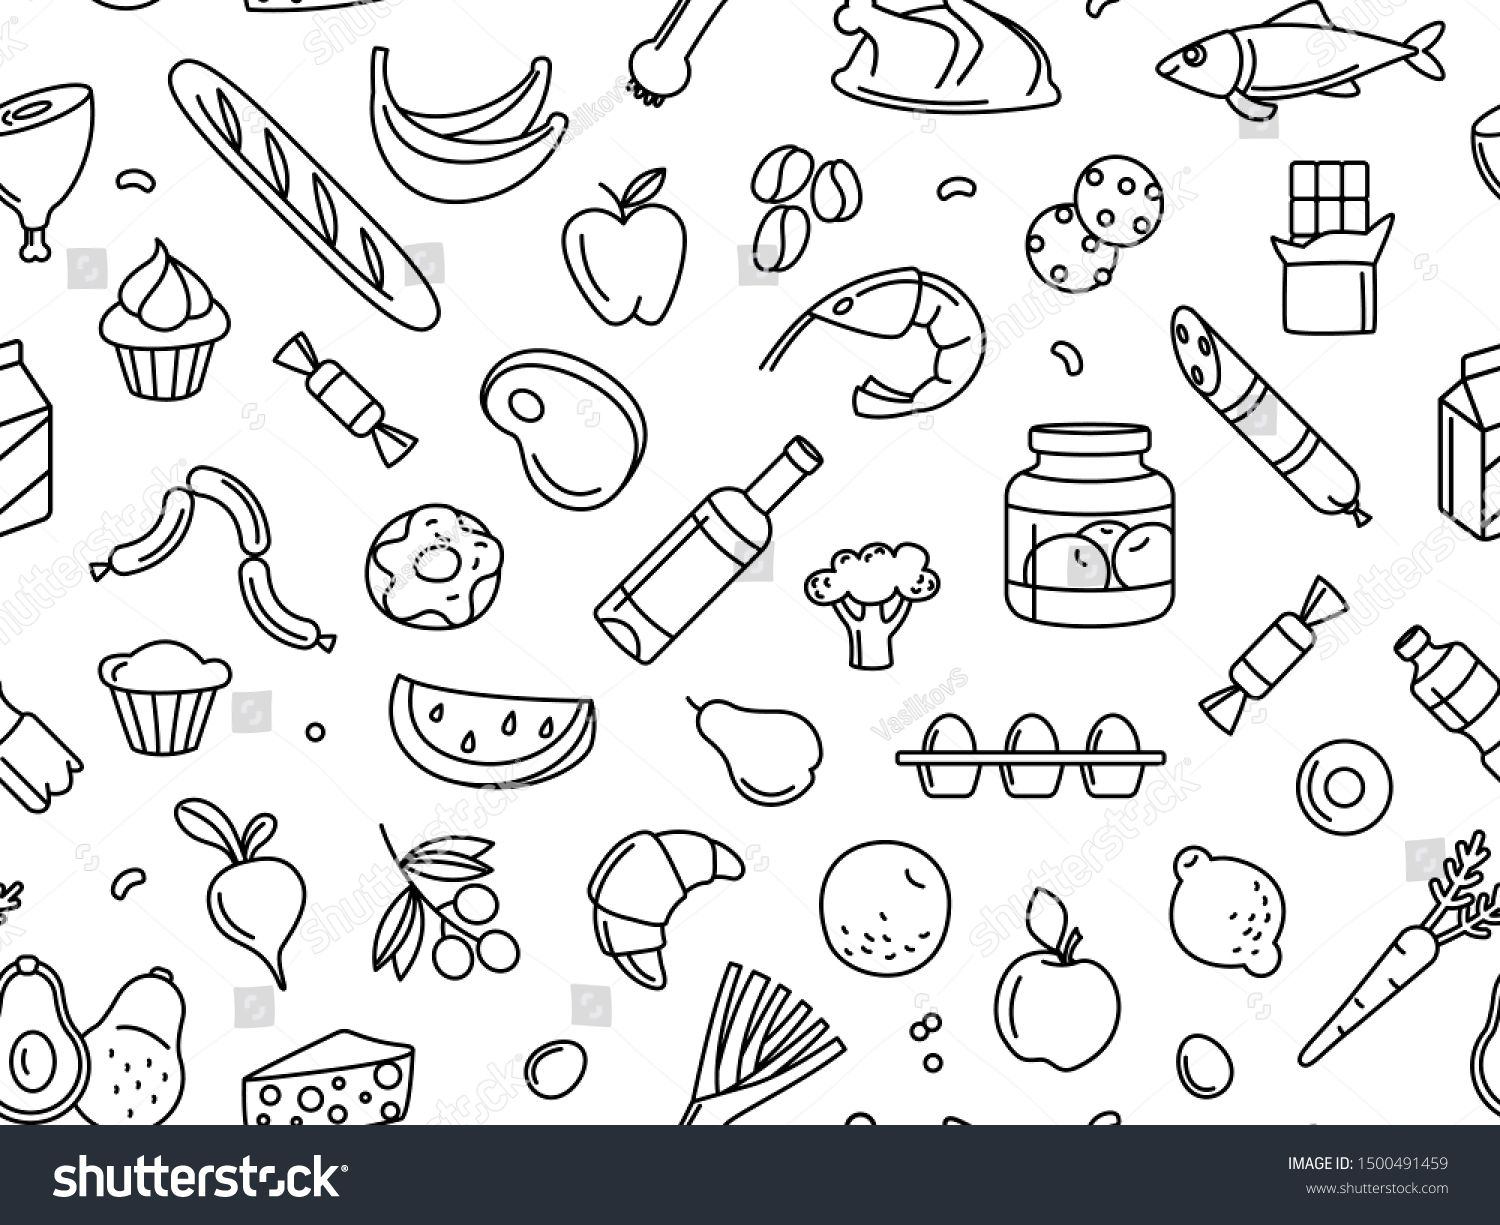 Supermarket grosery store food, drinks, vegetables, fruits, fish, meat, dairy, sweets market products goods seamless thin line icons background pattern. Vector illustration in linear simple style. #Sponsored , #Sponsored, #meat#fish#fruits#market